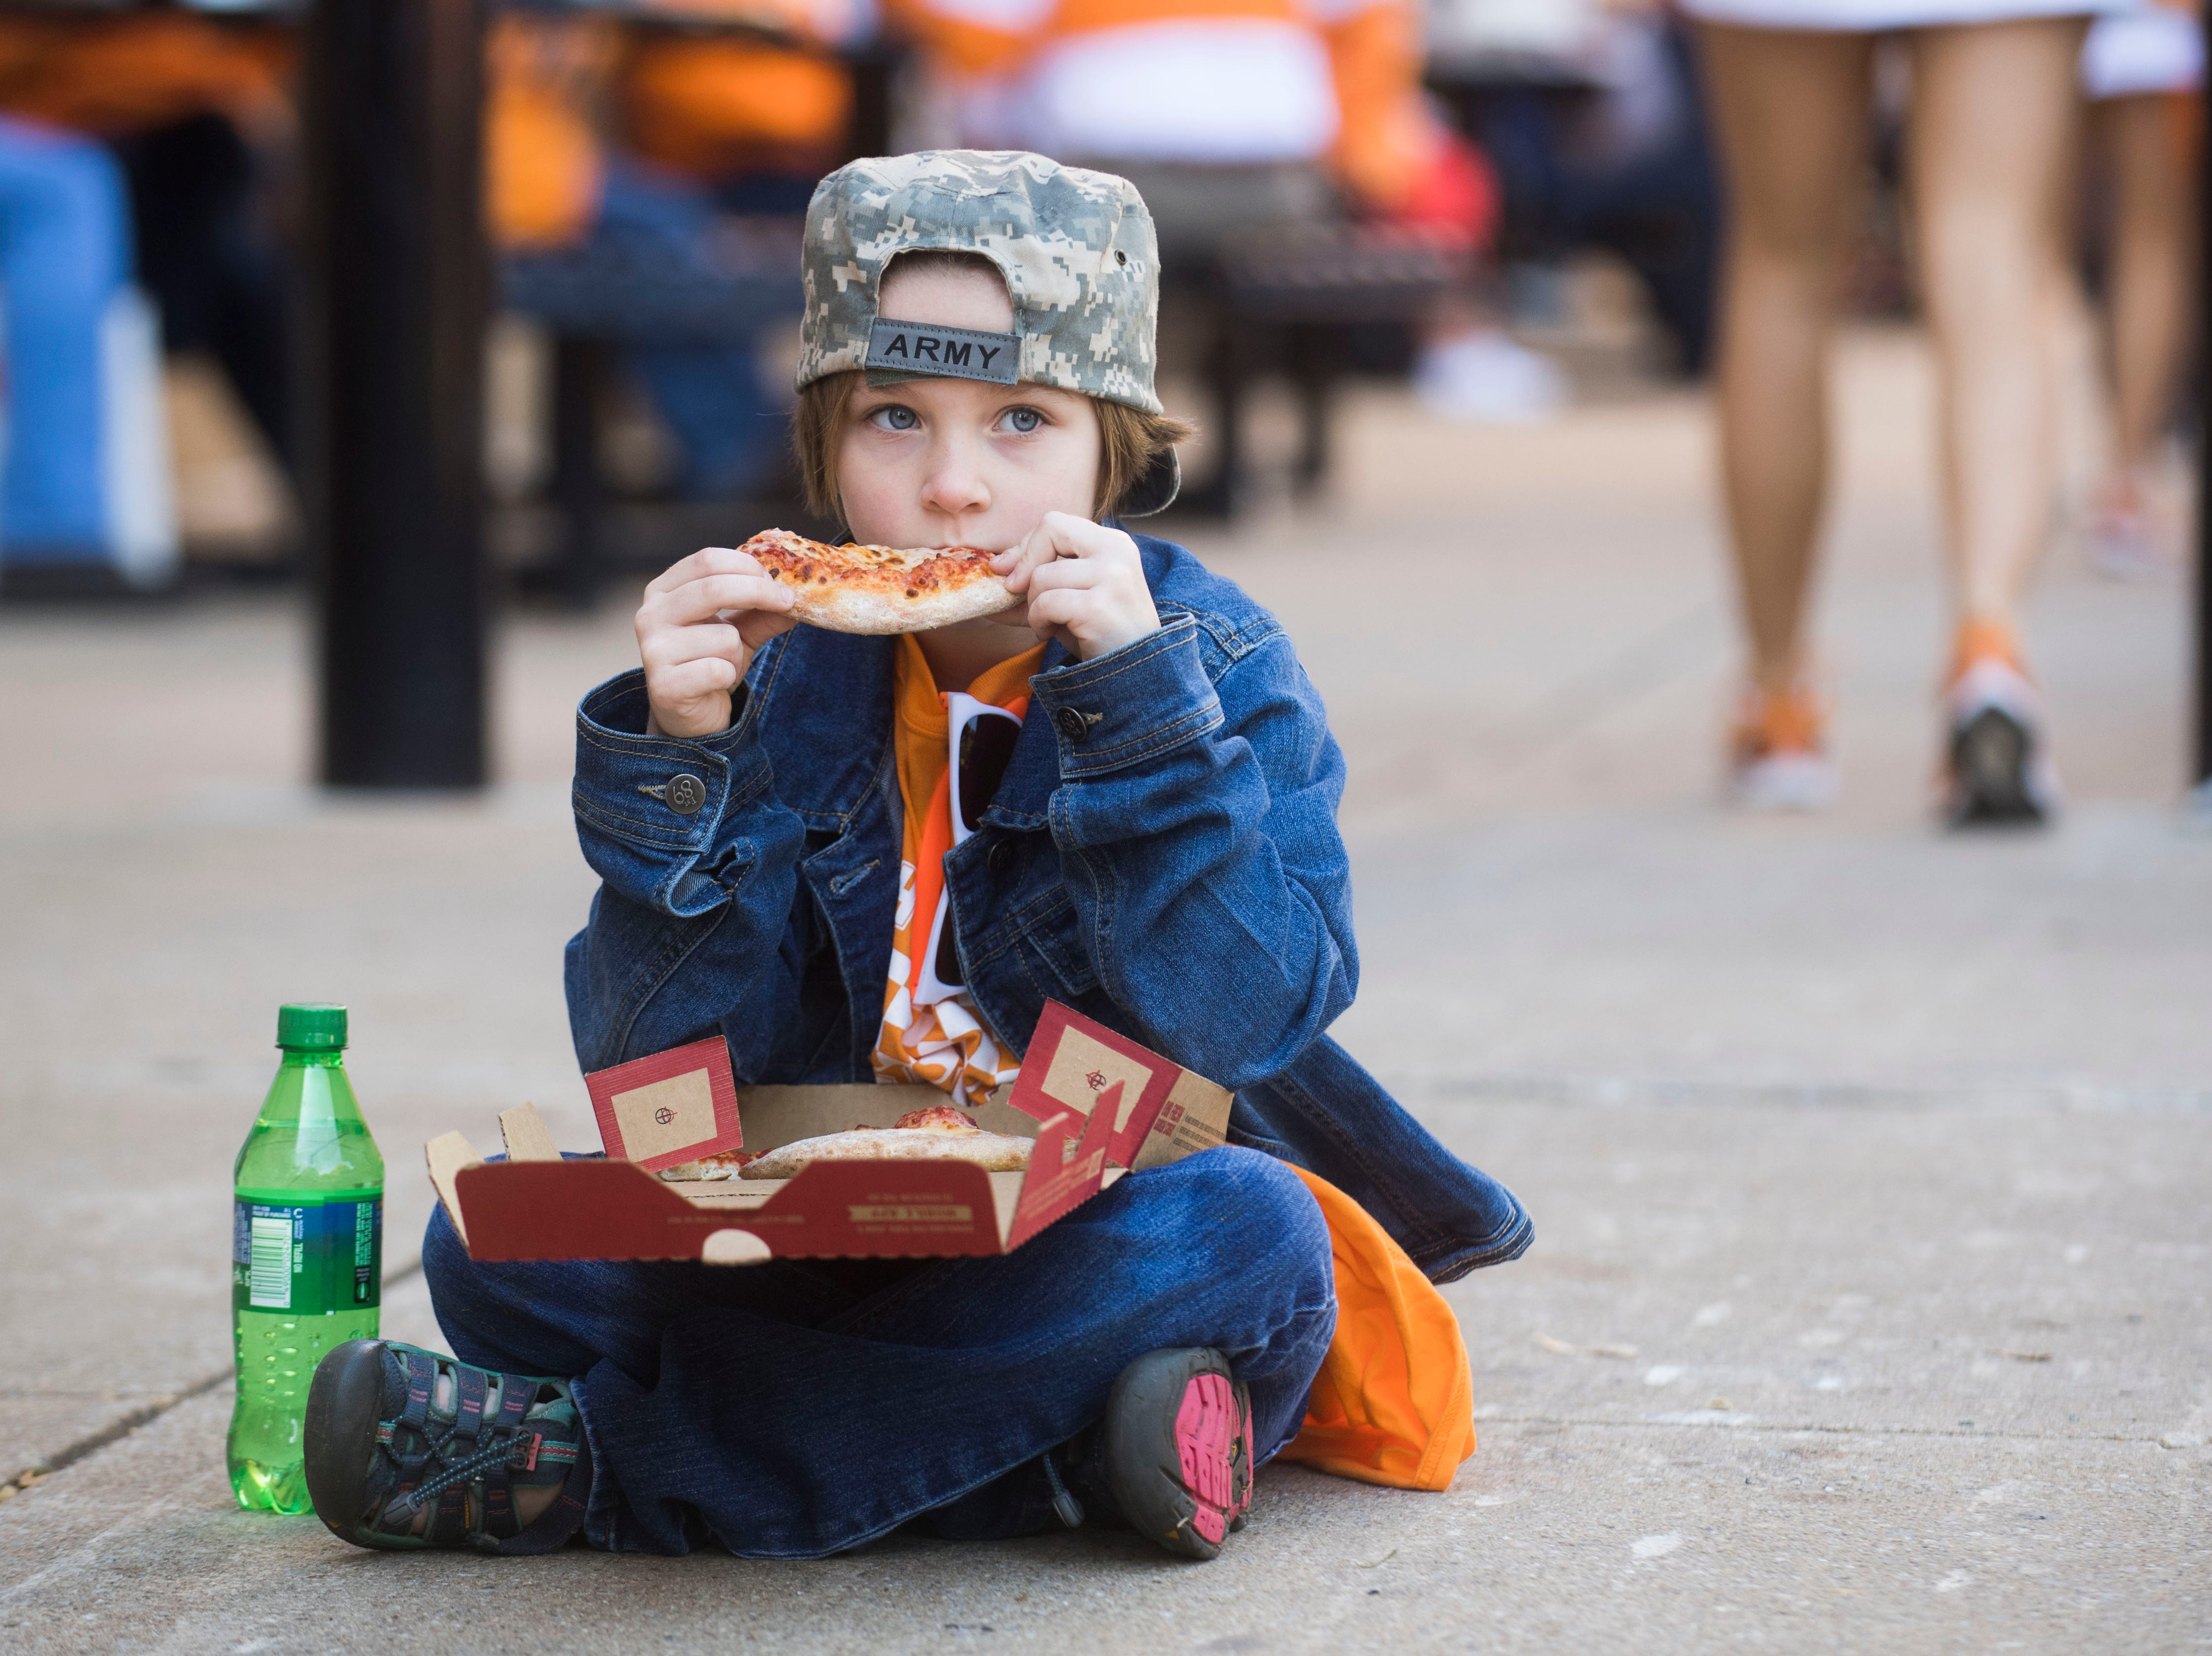 Lauren Puhr, 7, of Knoxville takes a seat while eating pizza before the homecoming game between Tennessee and Charlotte outside of Neyland Stadium Saturday, Nov. 3, 2018.